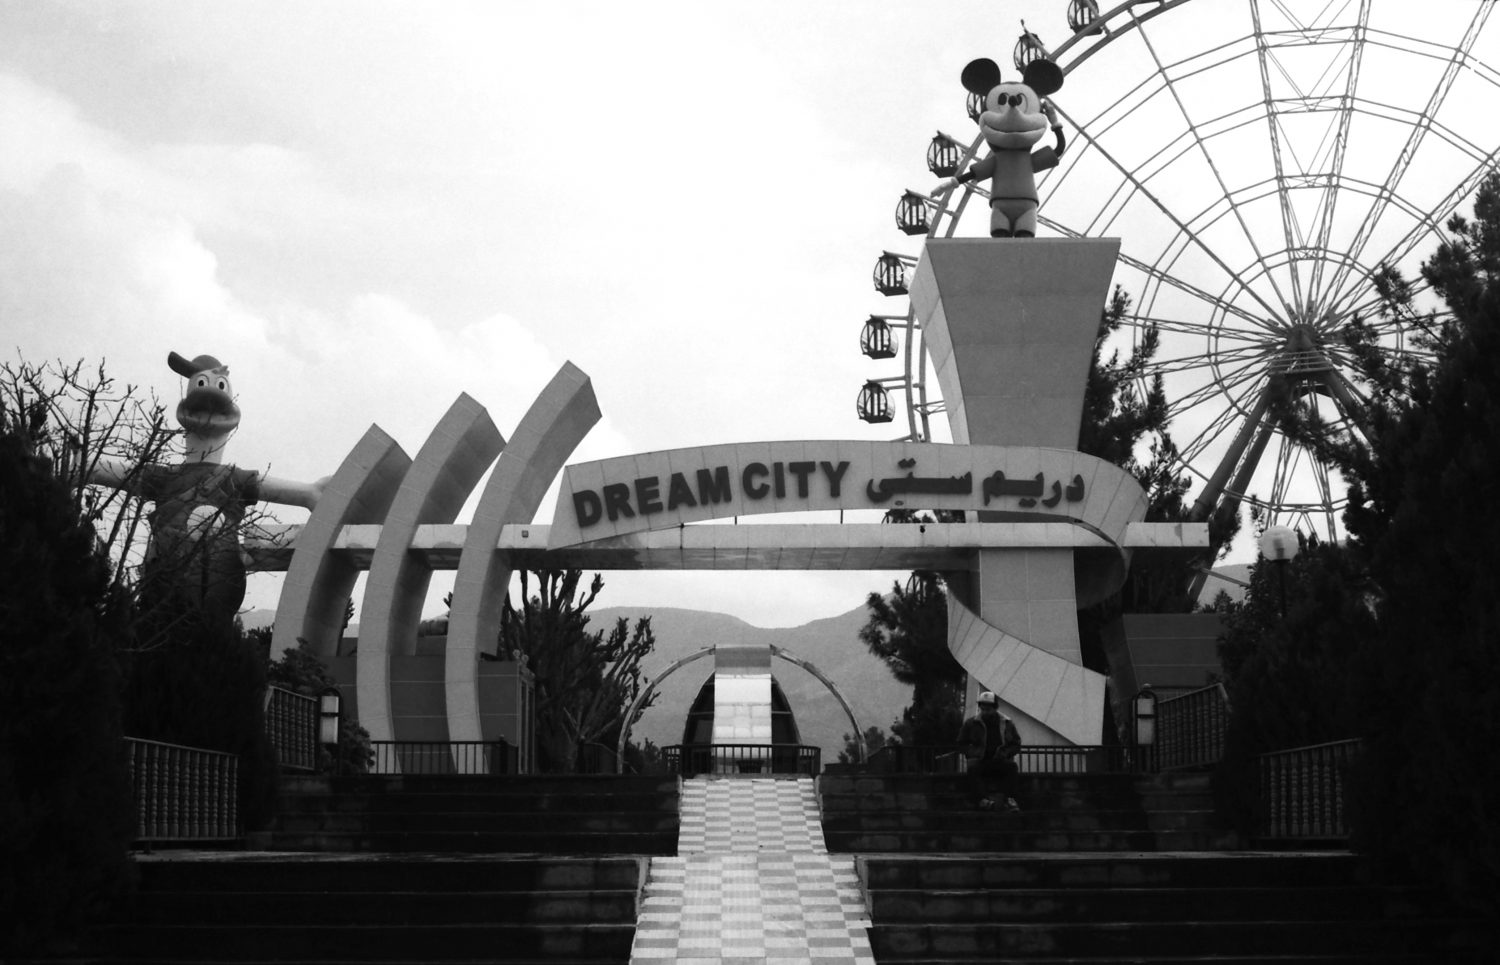 Dream City funfair